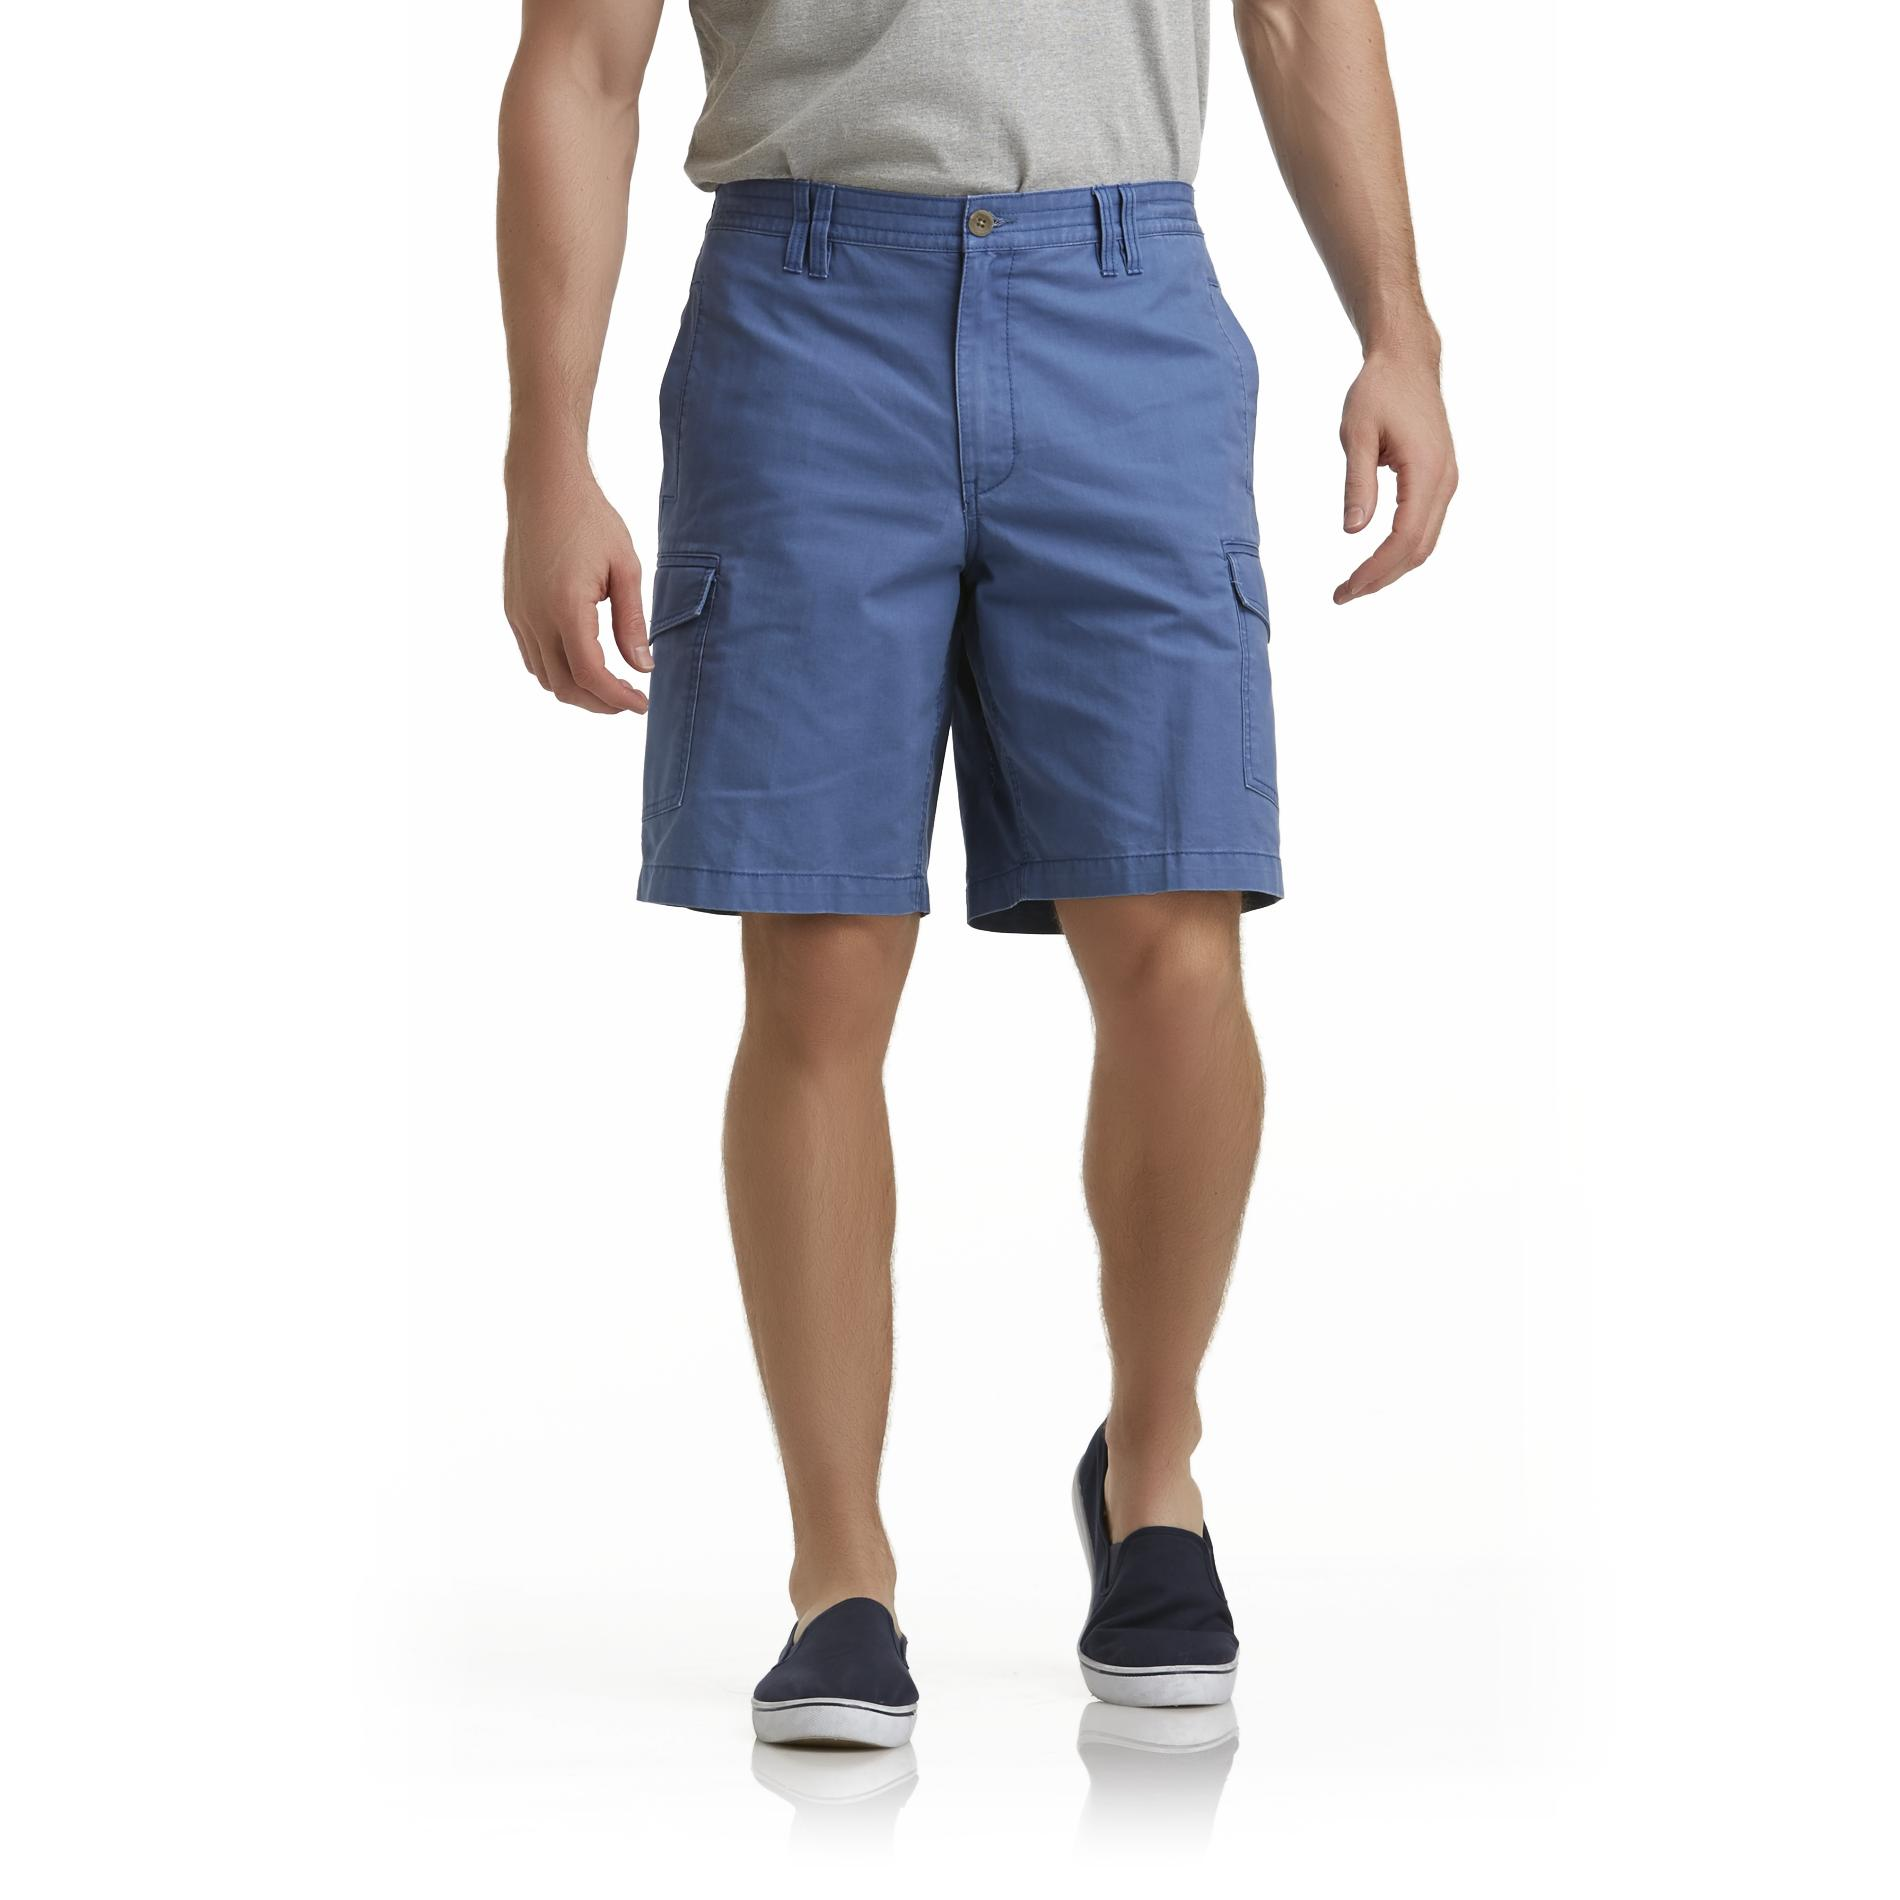 Basic Editions Men's Woven Cargo Shorts - Herringbone at Kmart.com